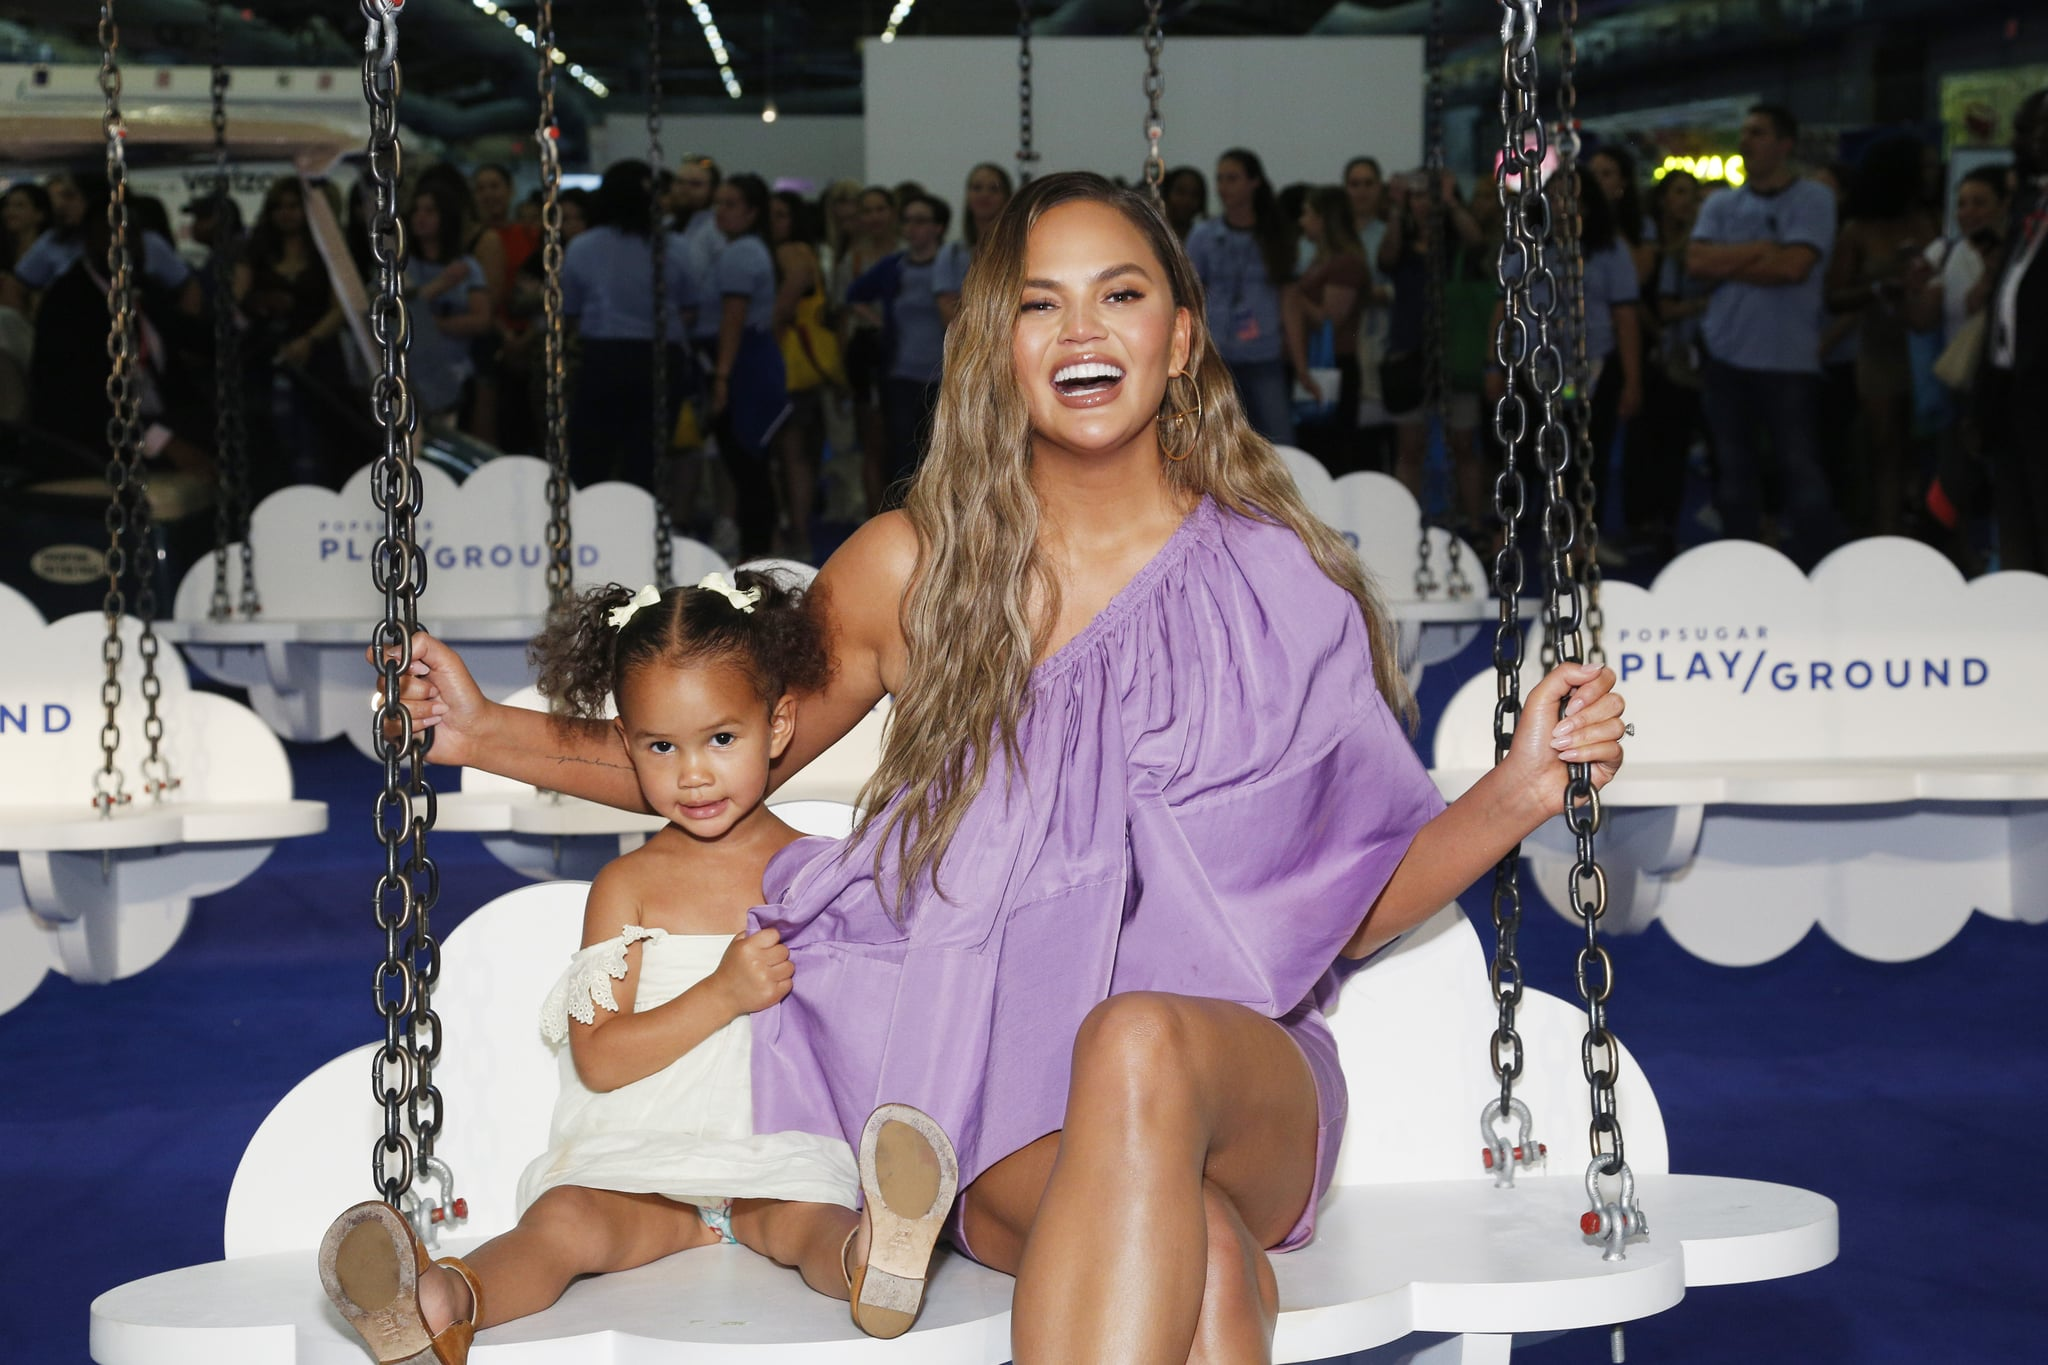 Luna Stephens and Chrissy Teigen